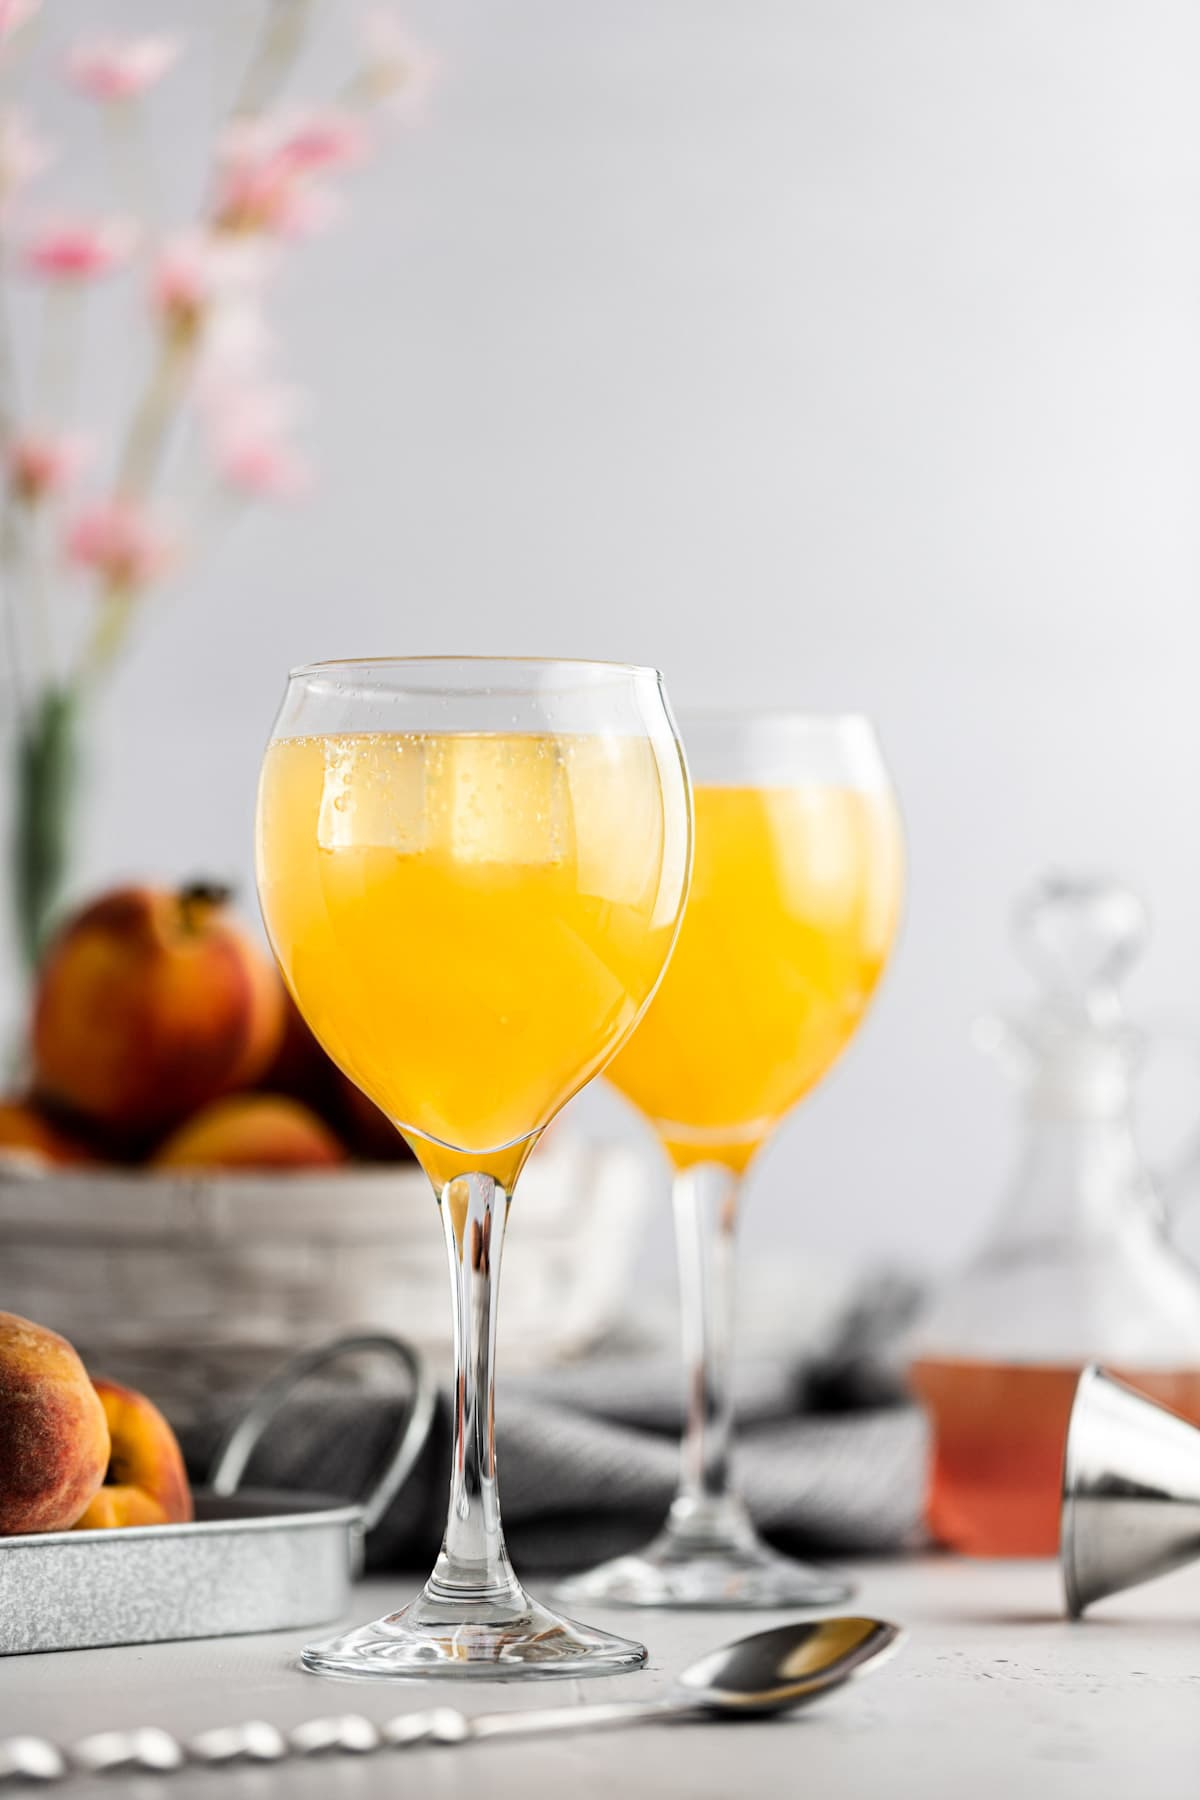 Two peach gin cocktails, next to a basket of fresh peaches, with a grey background.